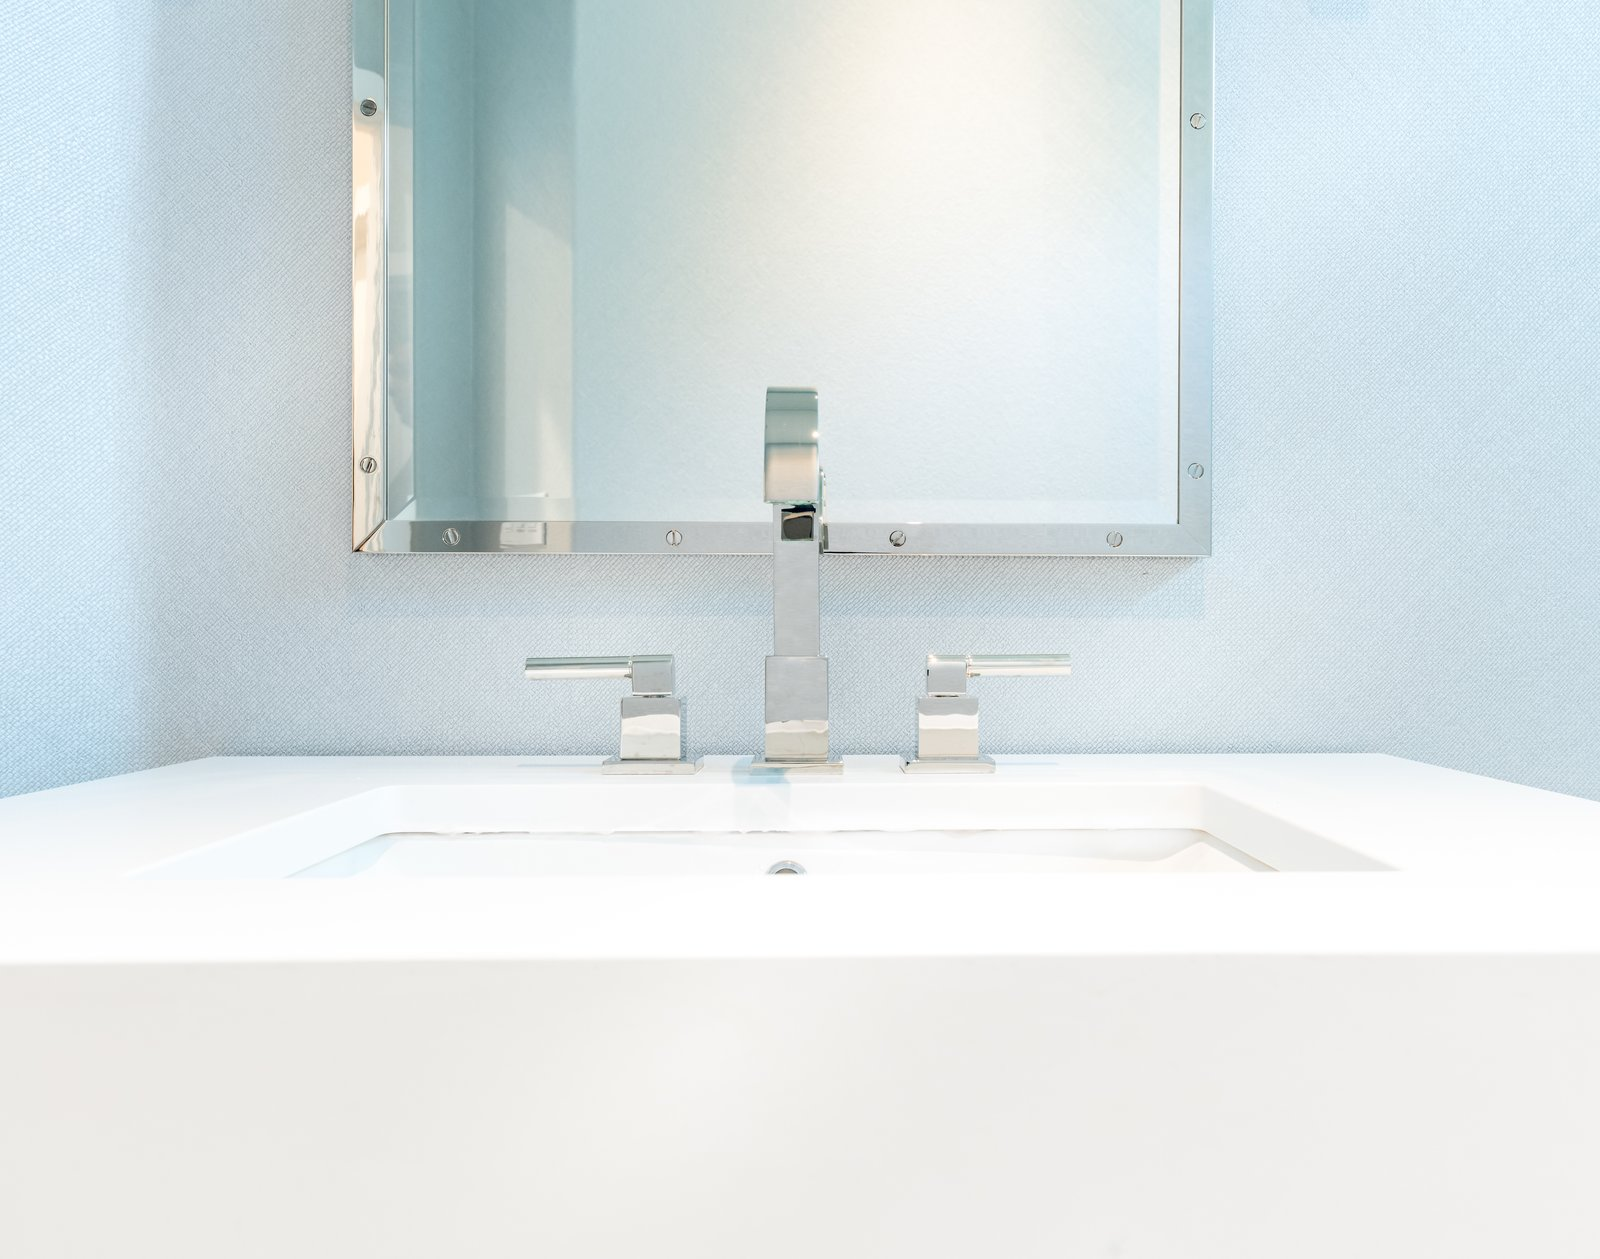 'Pure White' Quartz sink Tagged: Bath Room, Engineered Quartz Counter, Porcelain Tile Floor, Undermount Sink, Enclosed Shower, Ceiling Lighting, and Wall Lighting.  Vegas Luxe